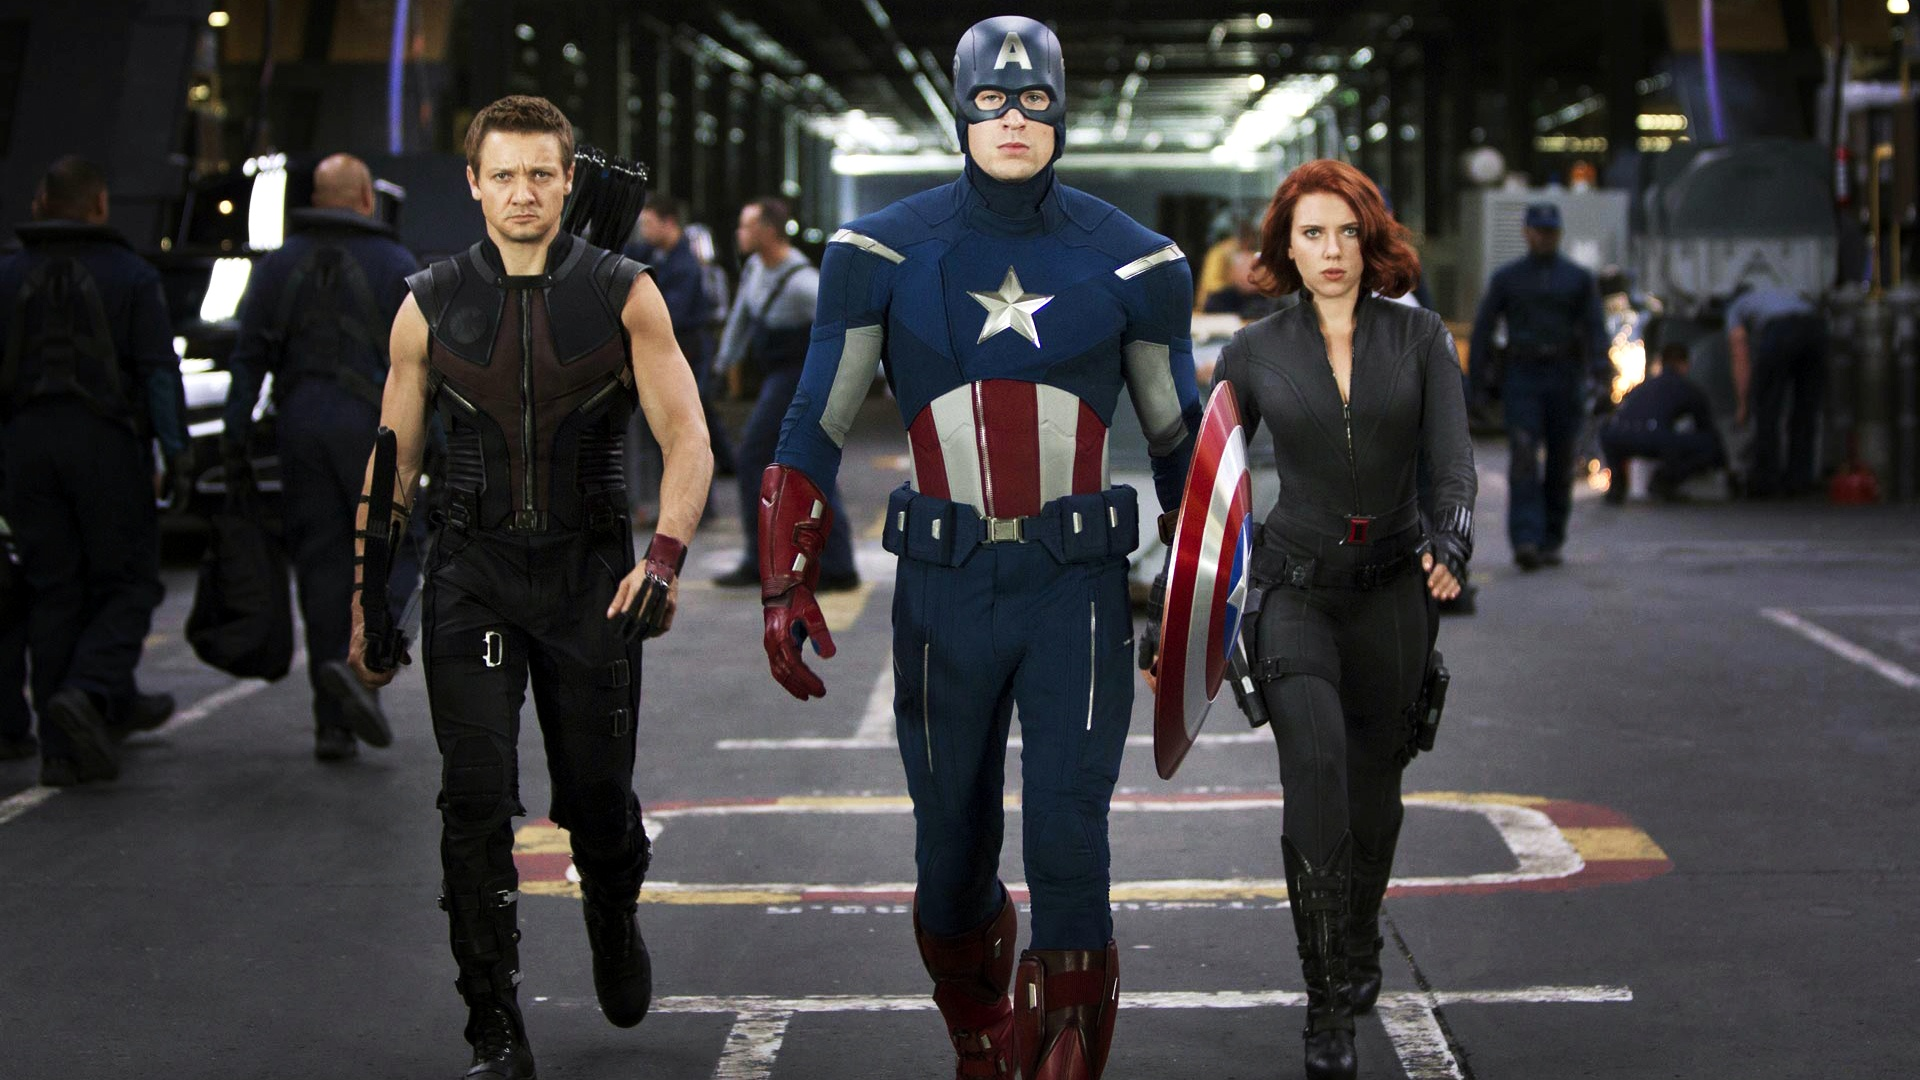 The Avengers, movies/tv, relationships, school, pop culture